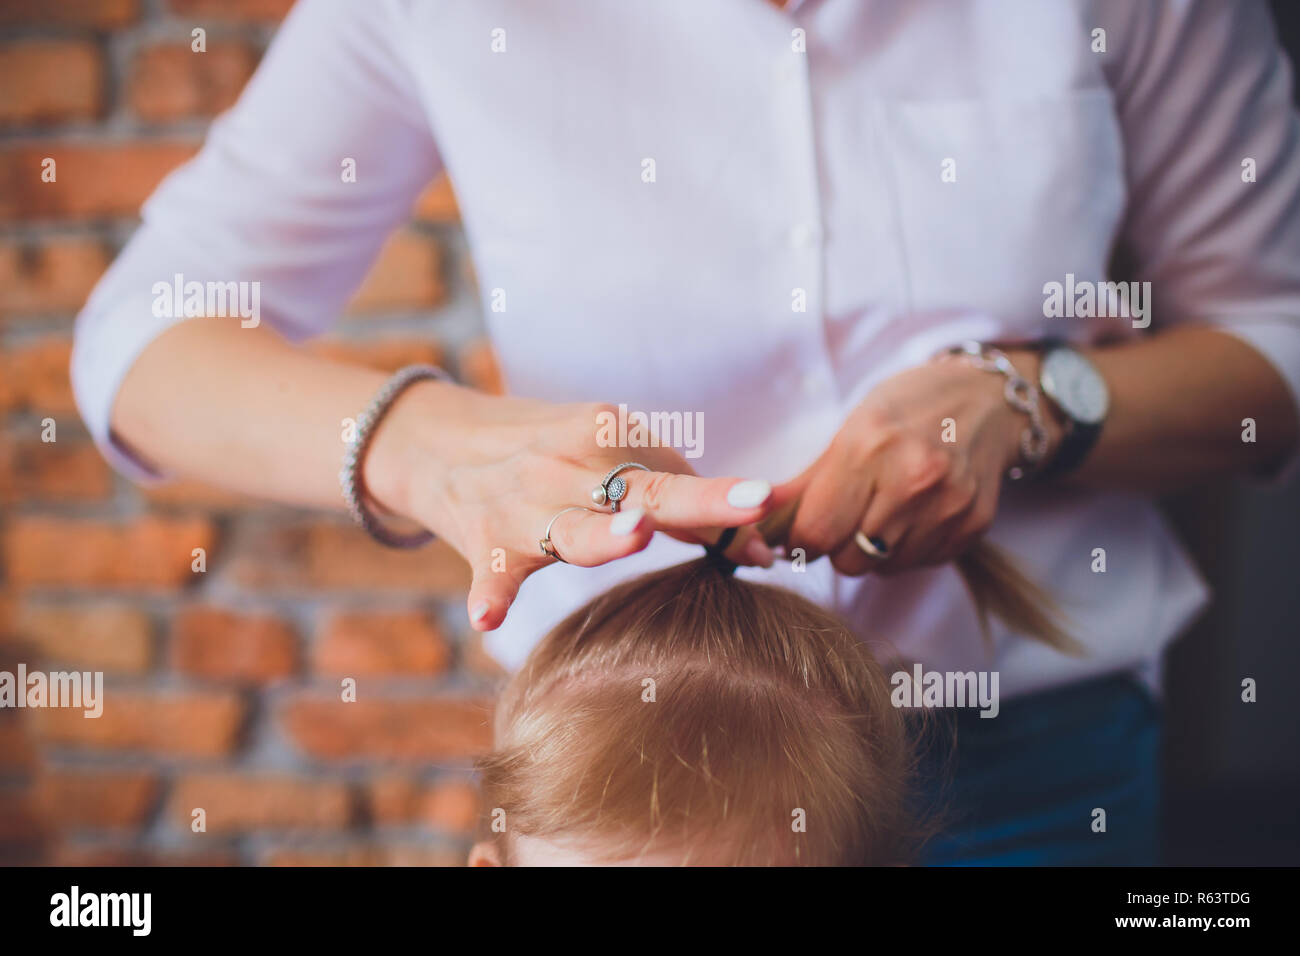 hands mom braid pigtails daughter - Stock Image